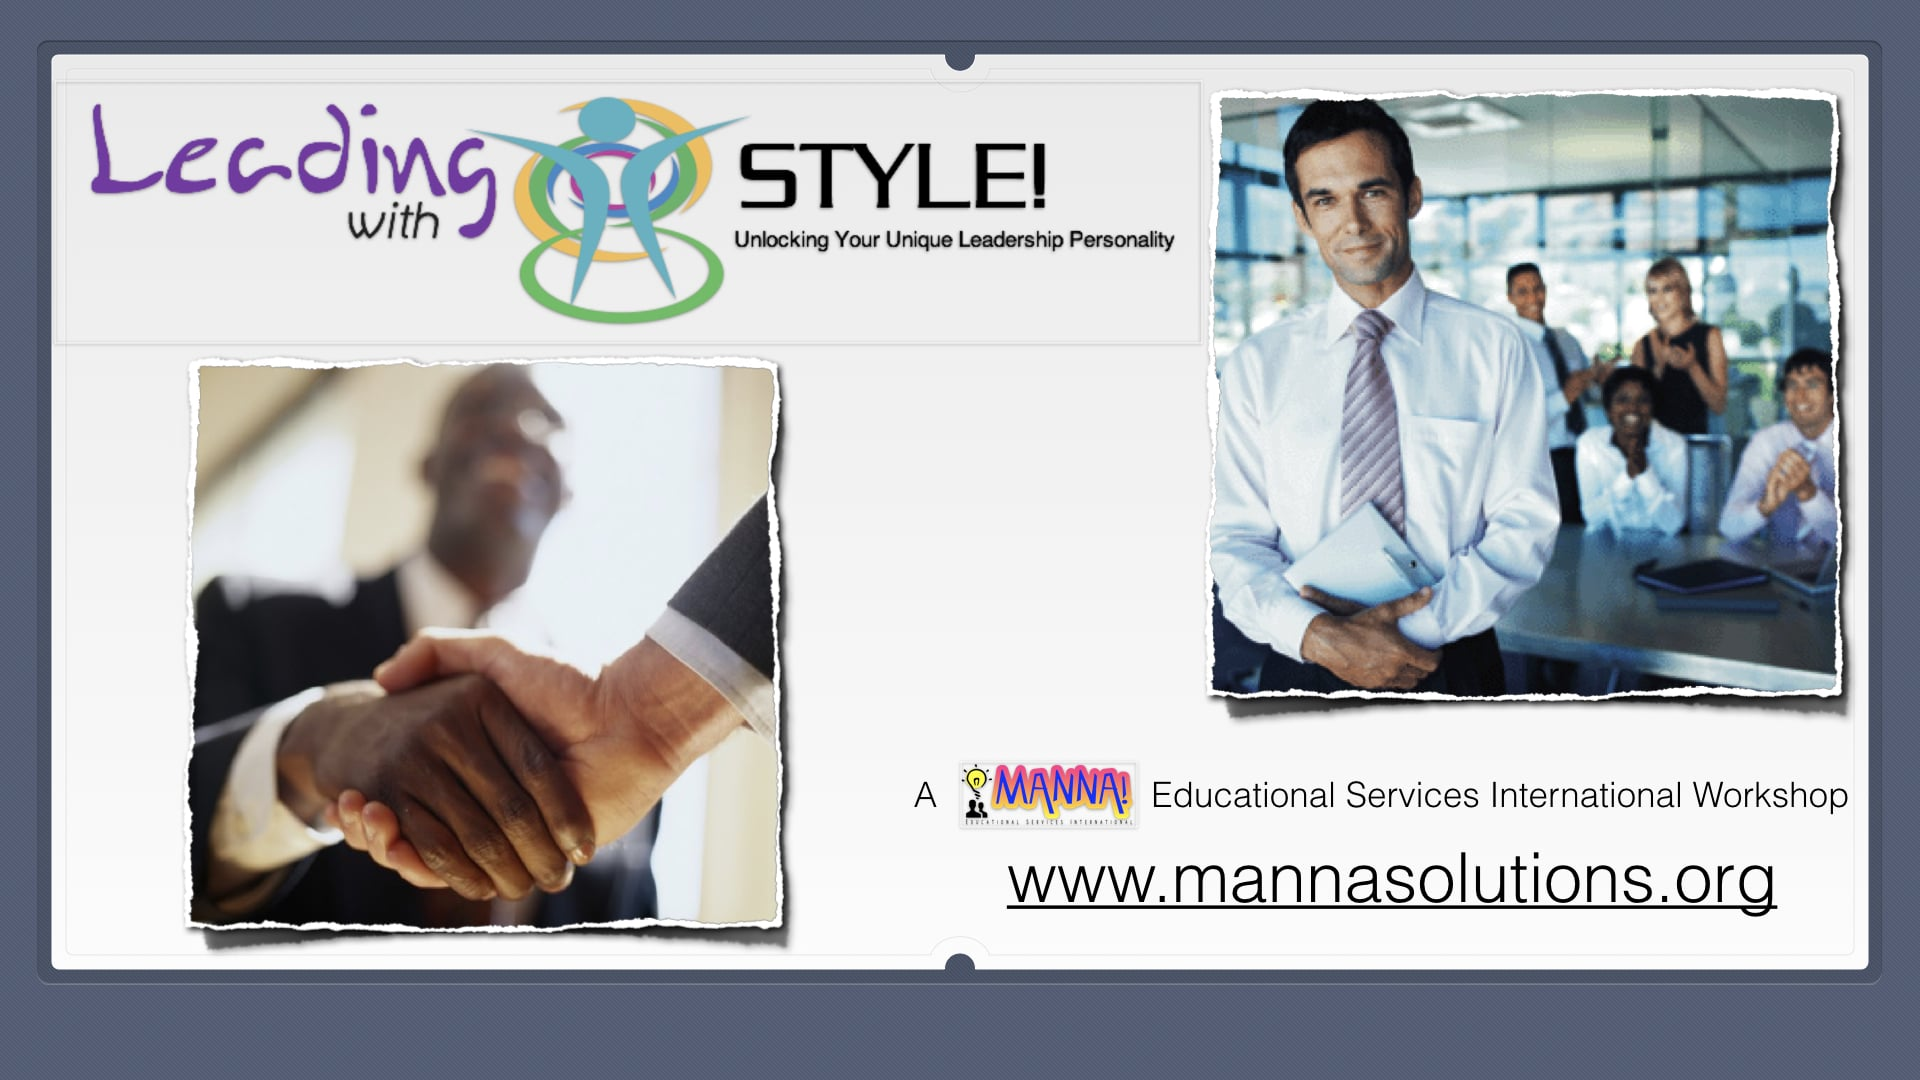 Manna! Solutions - Leading with Style - Slide 003